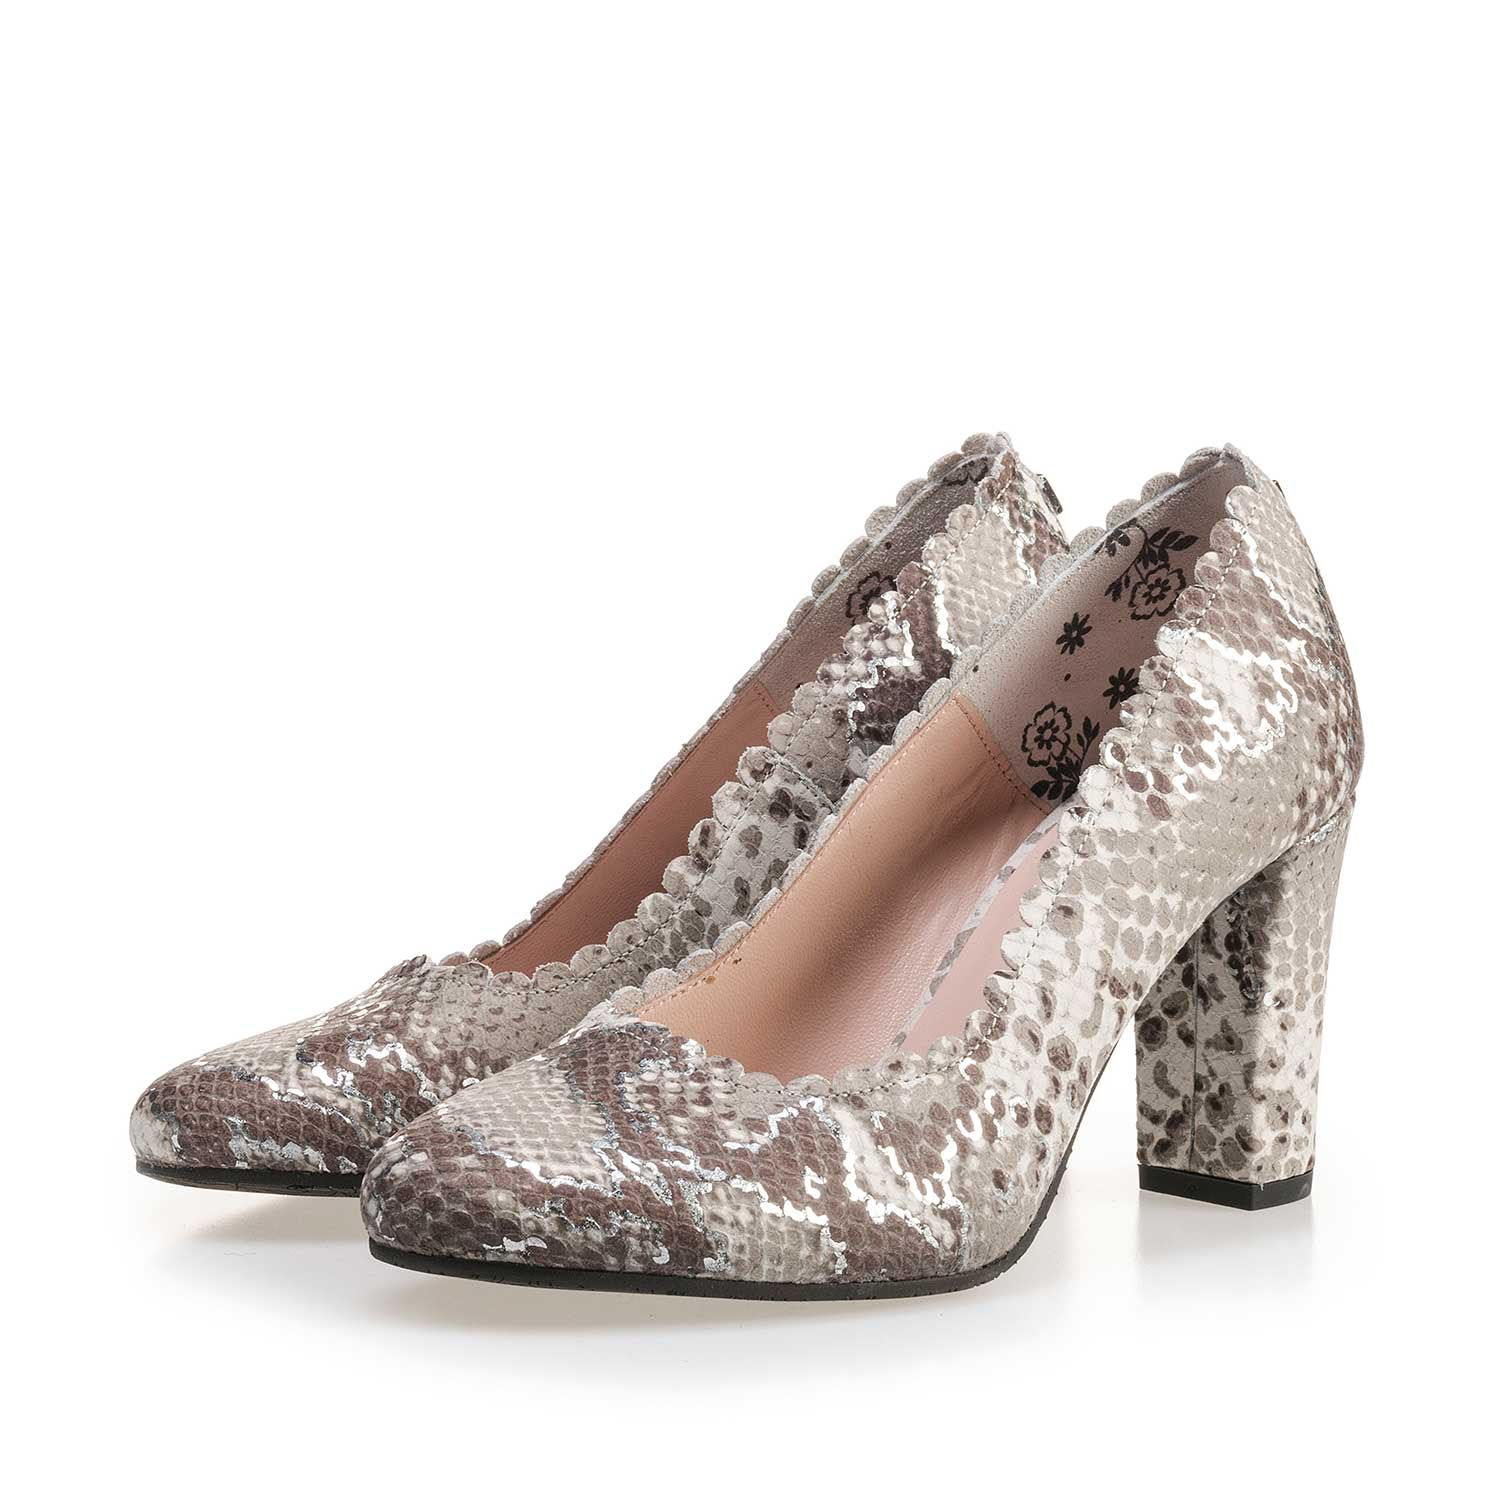 85249/03 - Taupe-coloured leather pumps with snake print